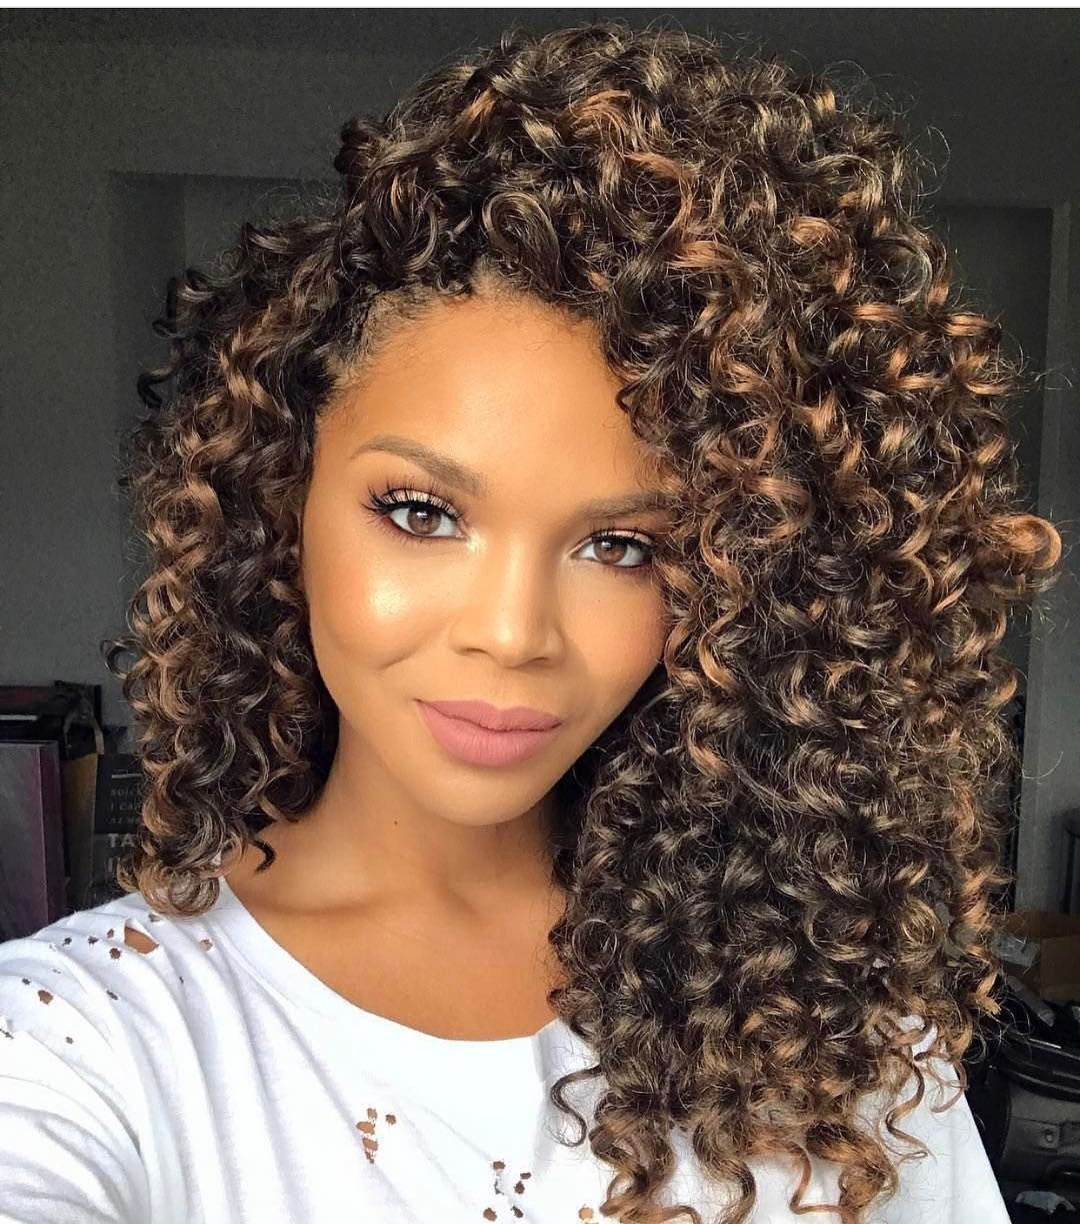 Crownedbyd The Crownedbyd Sophie Soft Ombre Hair 30 Curly Crochet Hair Styles Natural Hair Styles Curly Hair Styles